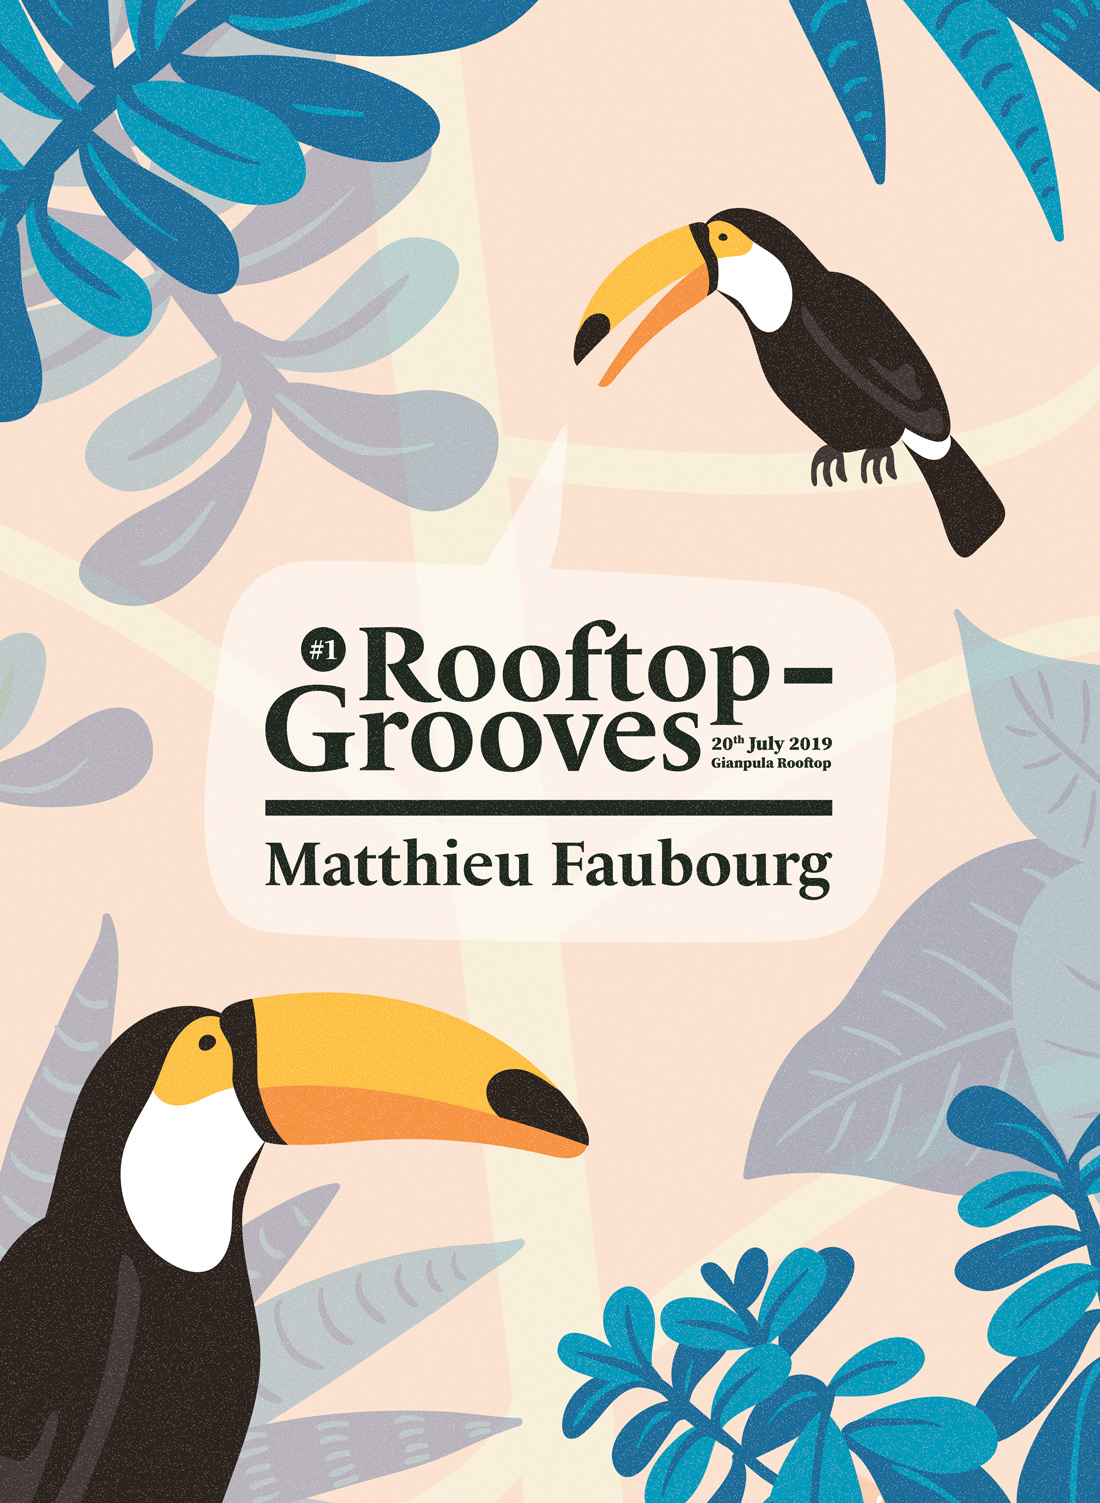 Rooftop Grooves With Matthieu Faubourg flyer